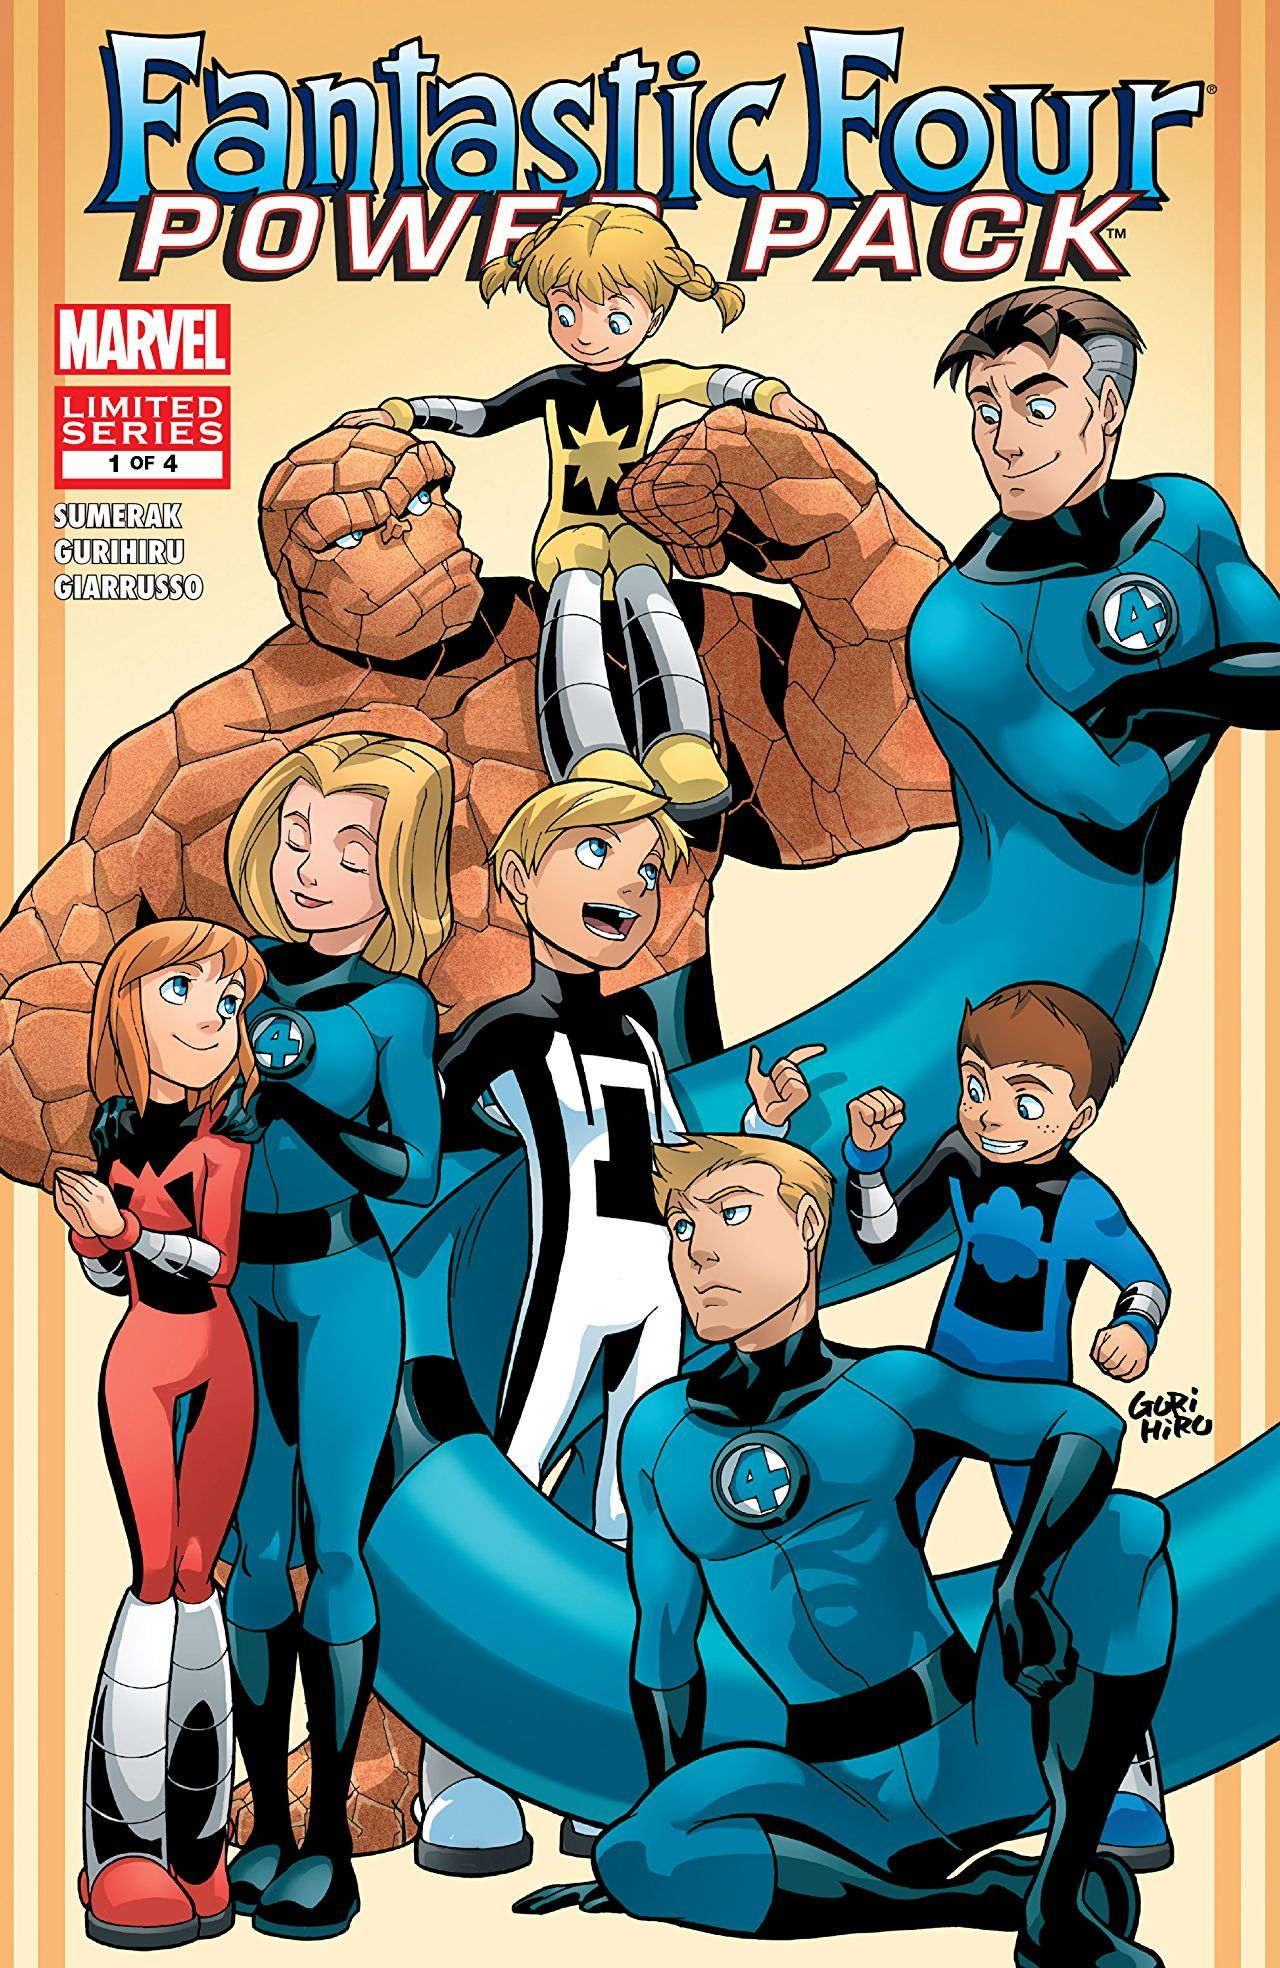 Fantastic Four And Power Pack 2007 1 Of 4 Comics By Comixology Fantastic Four Marvel Comics Art Comics